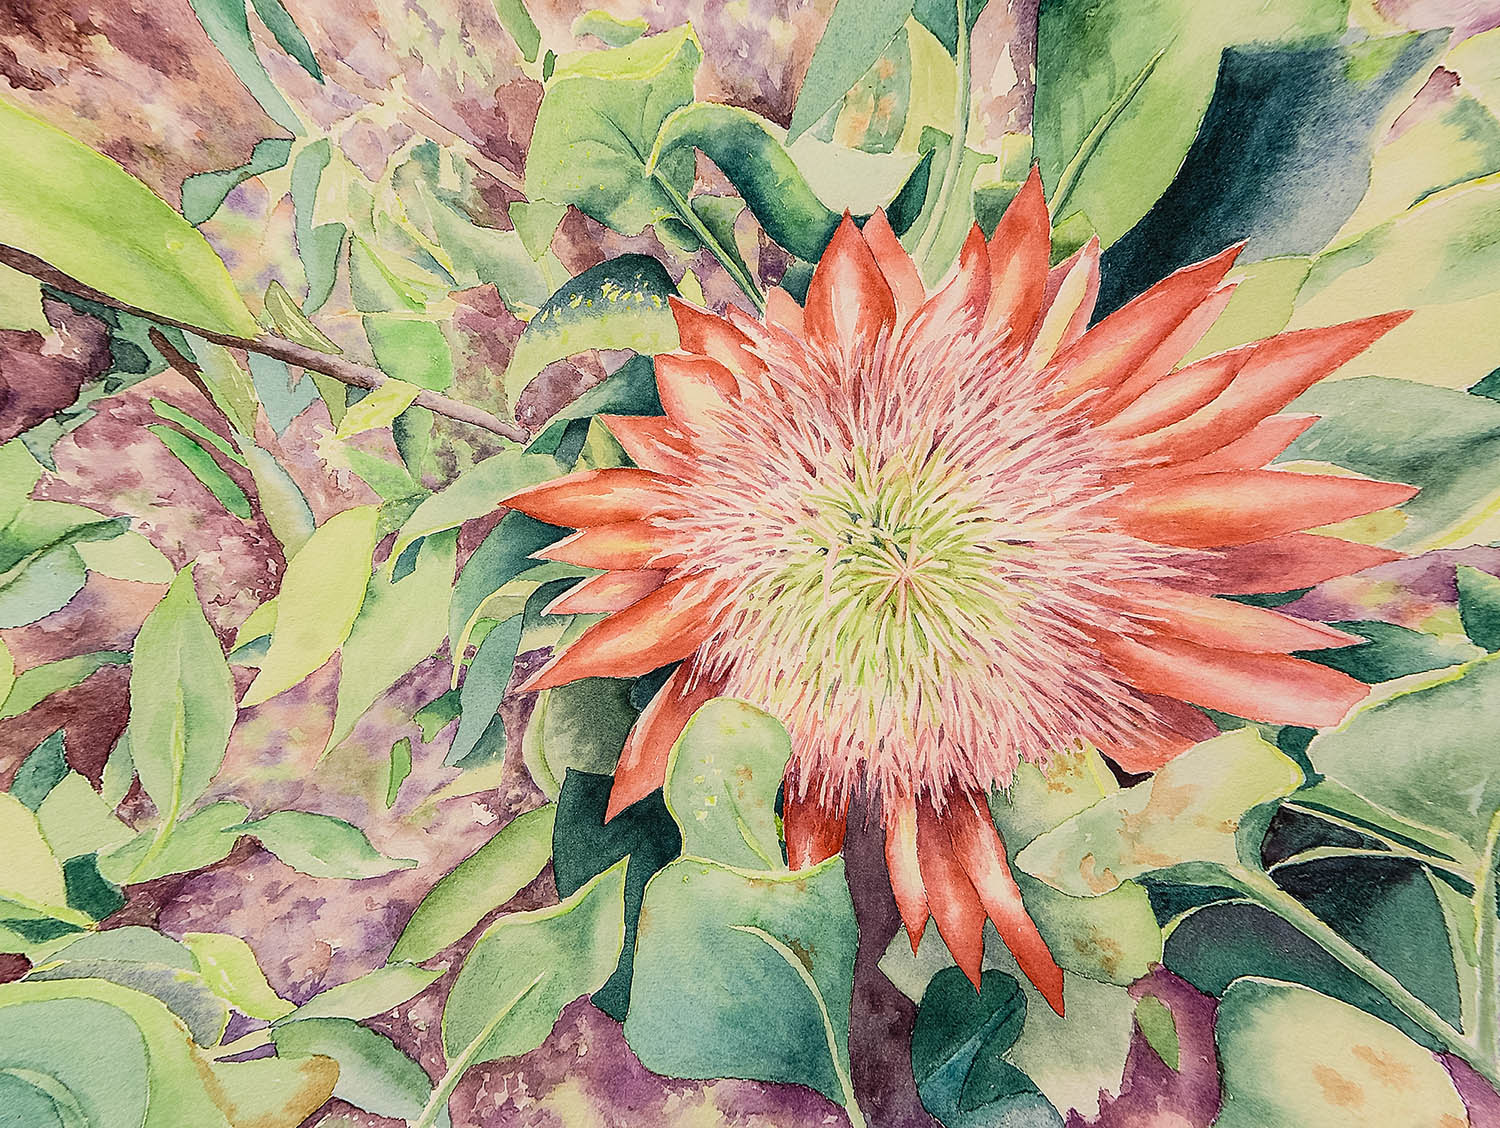 Watercolor of a protia flower by artist Martha Shilliday.